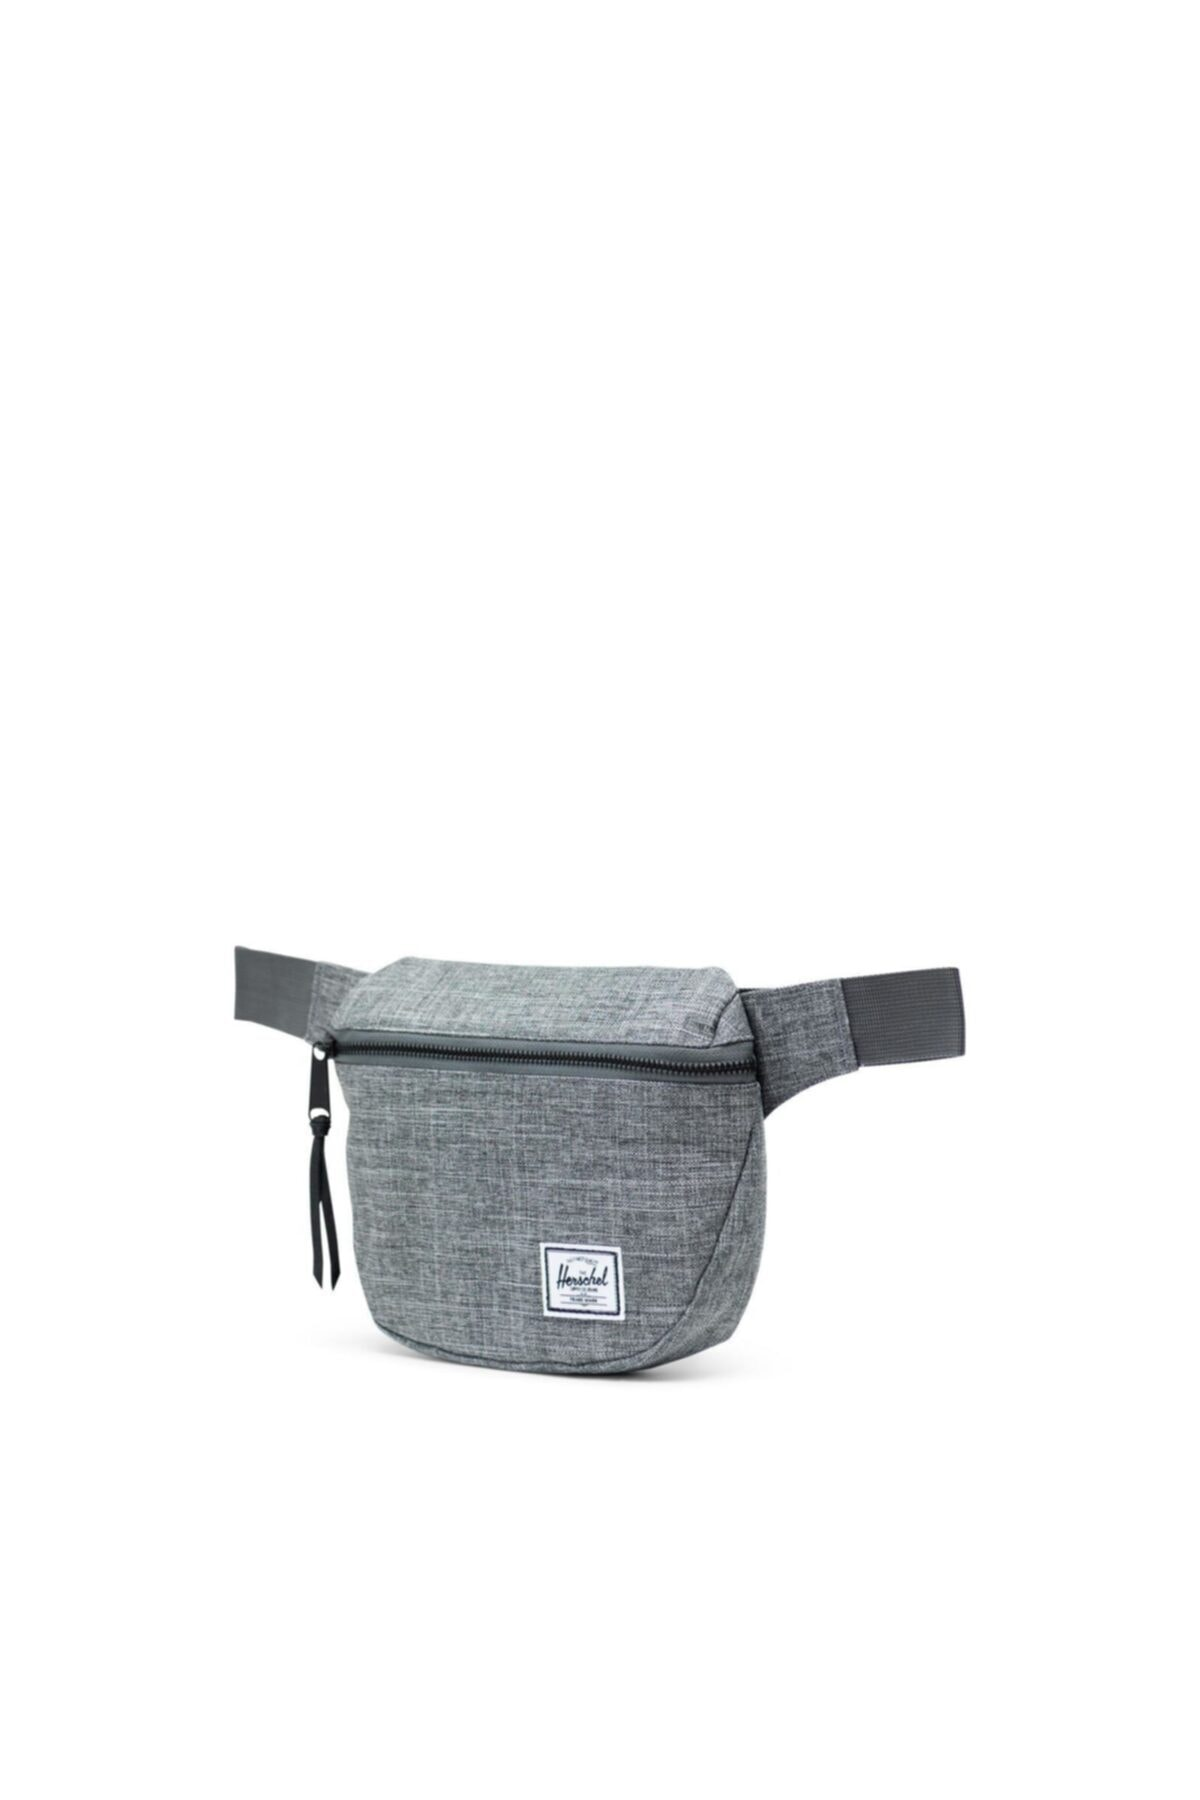 Herschel Supply Co. Herschel Bel Çantası Fifteen Raven Crosshatch 2